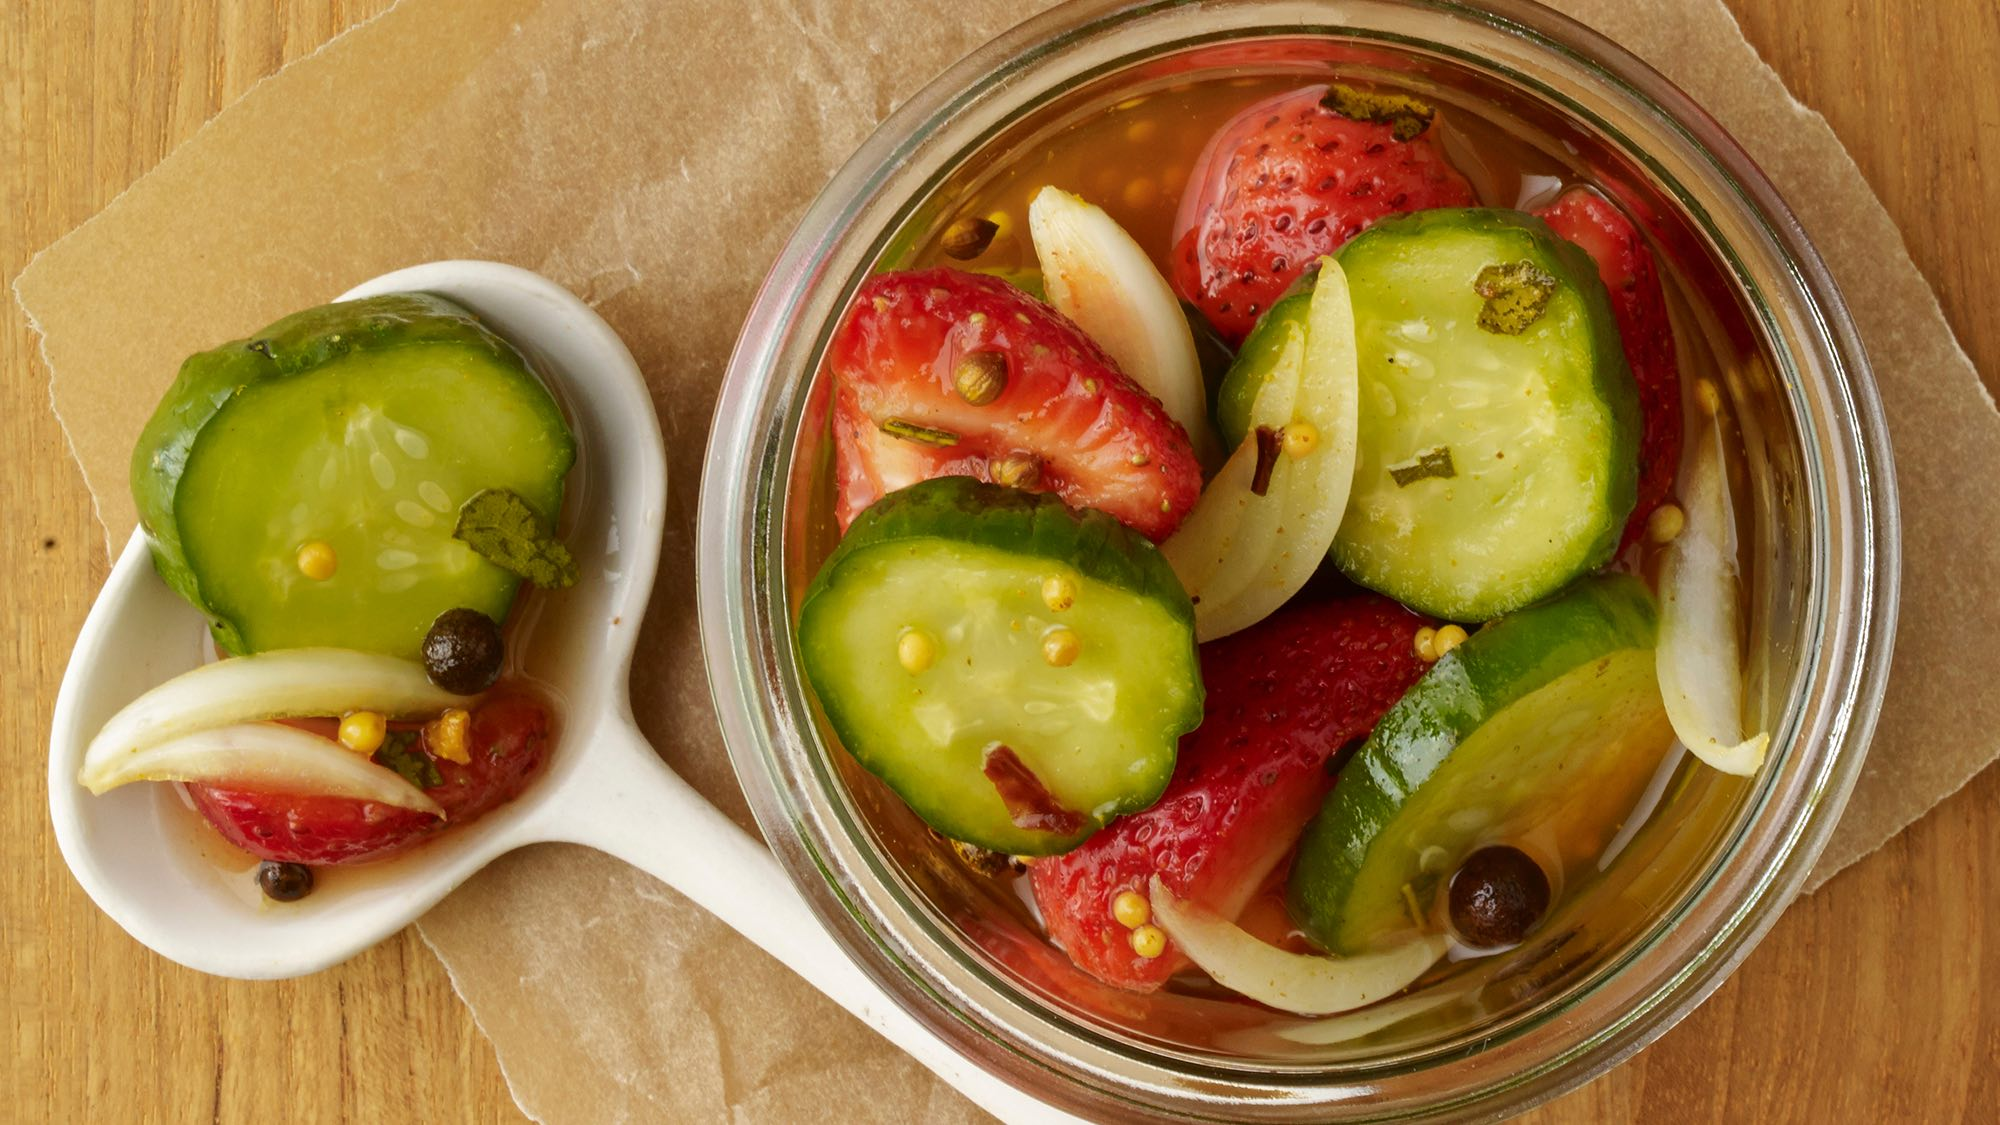 smoky-sweet-pickles-with-strawberries.jpg